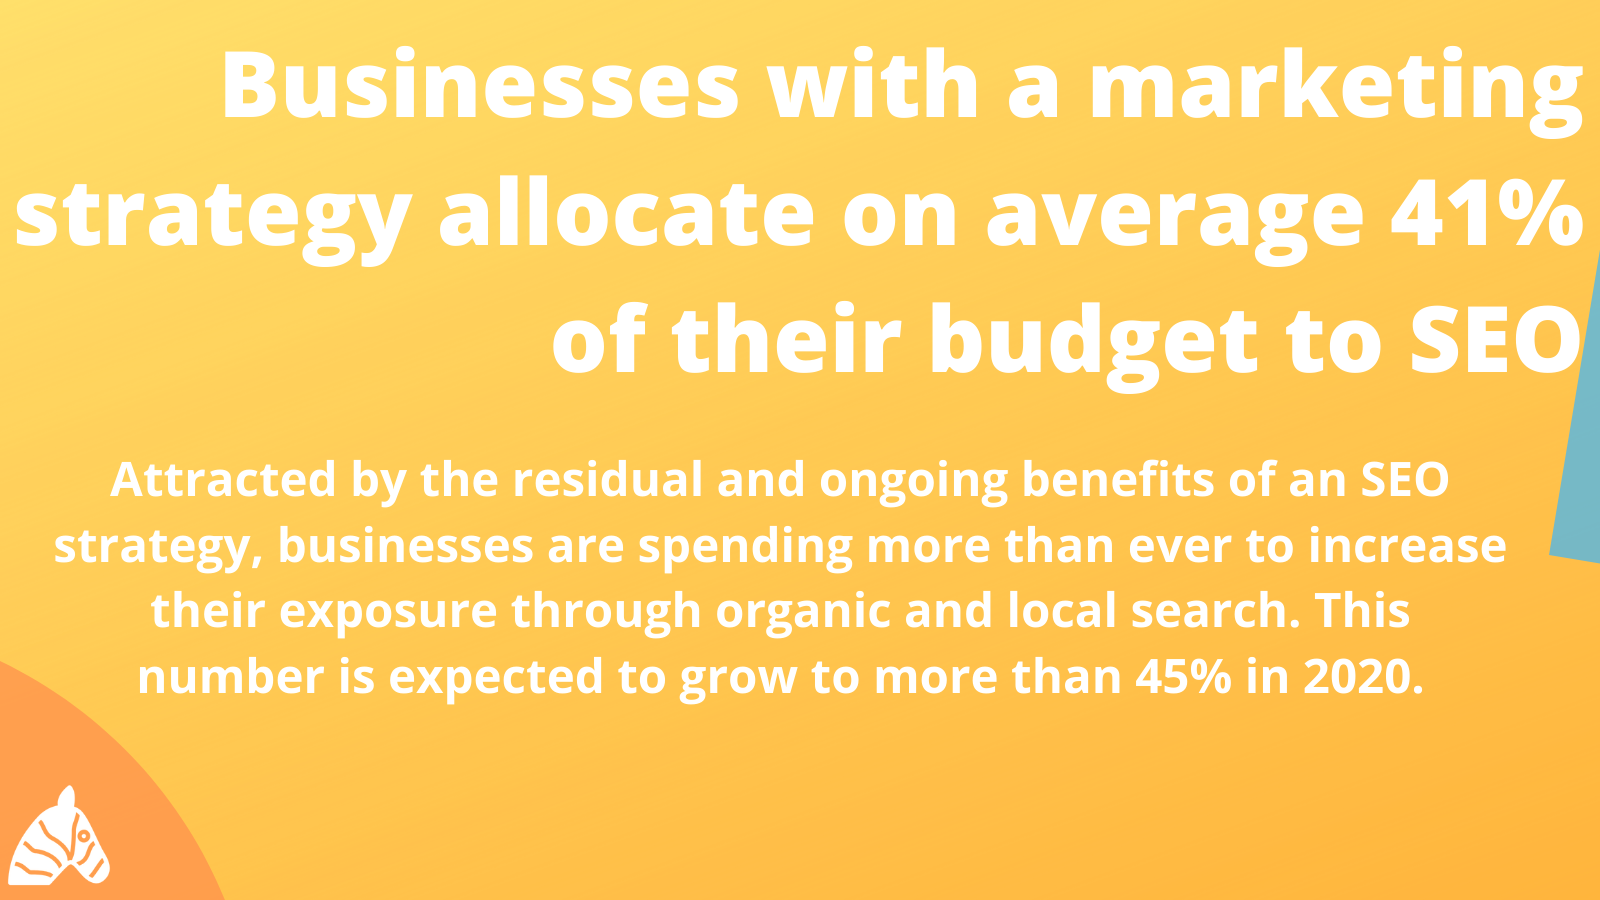 Businesses with a marketing strategy allocate on average 41% of their budget to local SEO statistic